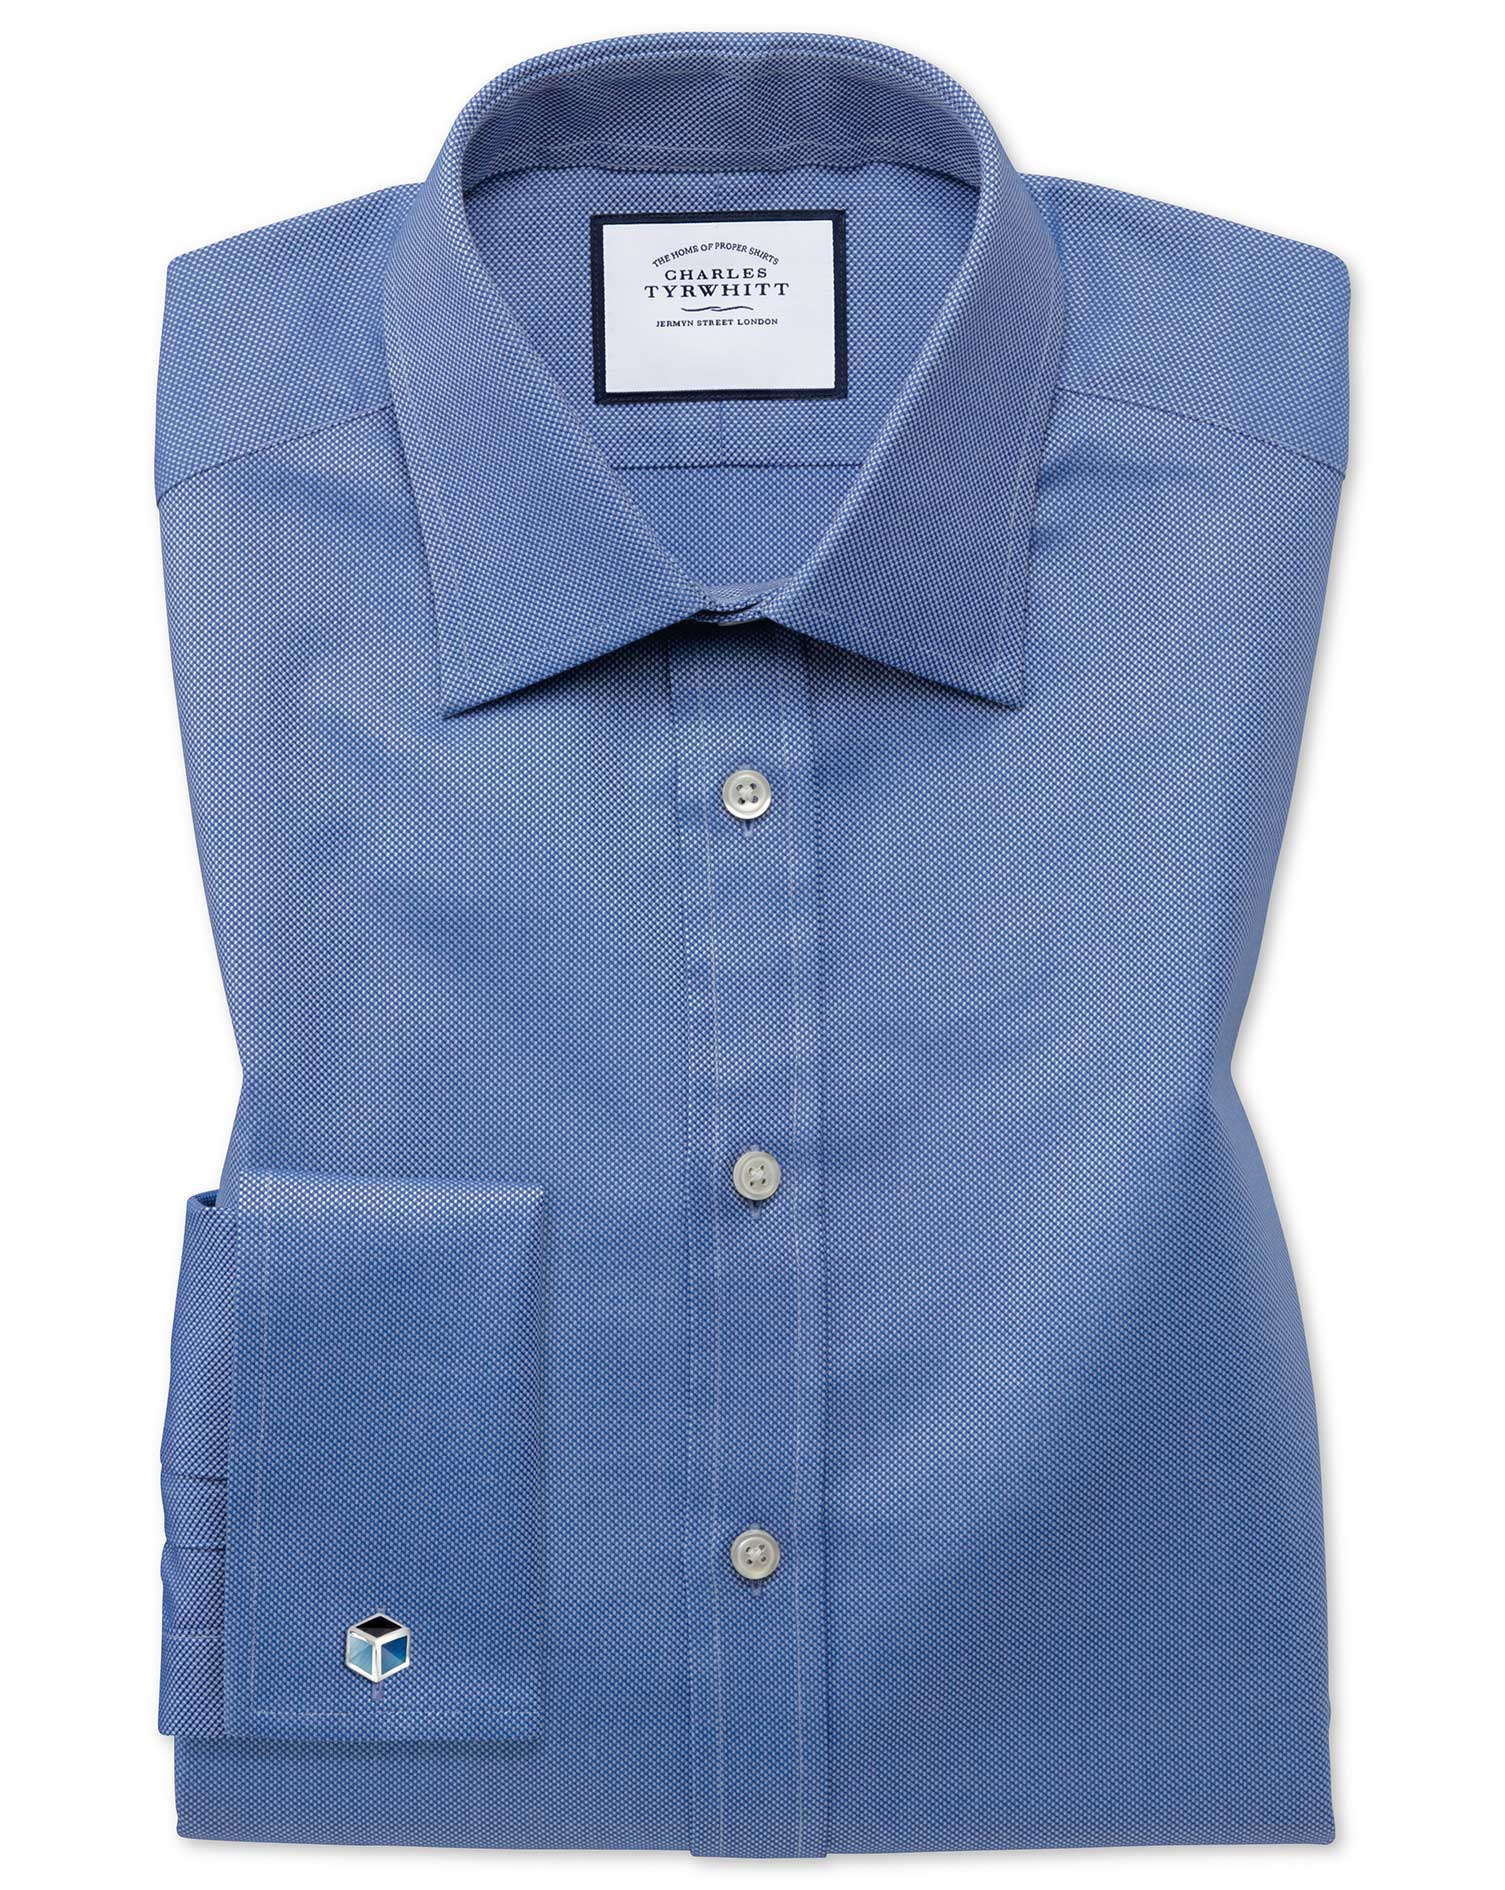 Classic Fit Egyptian Cotton Royal Oxford Royal Formal Shirt Single Cuff Size 17/36 by Charles Tyrwhi